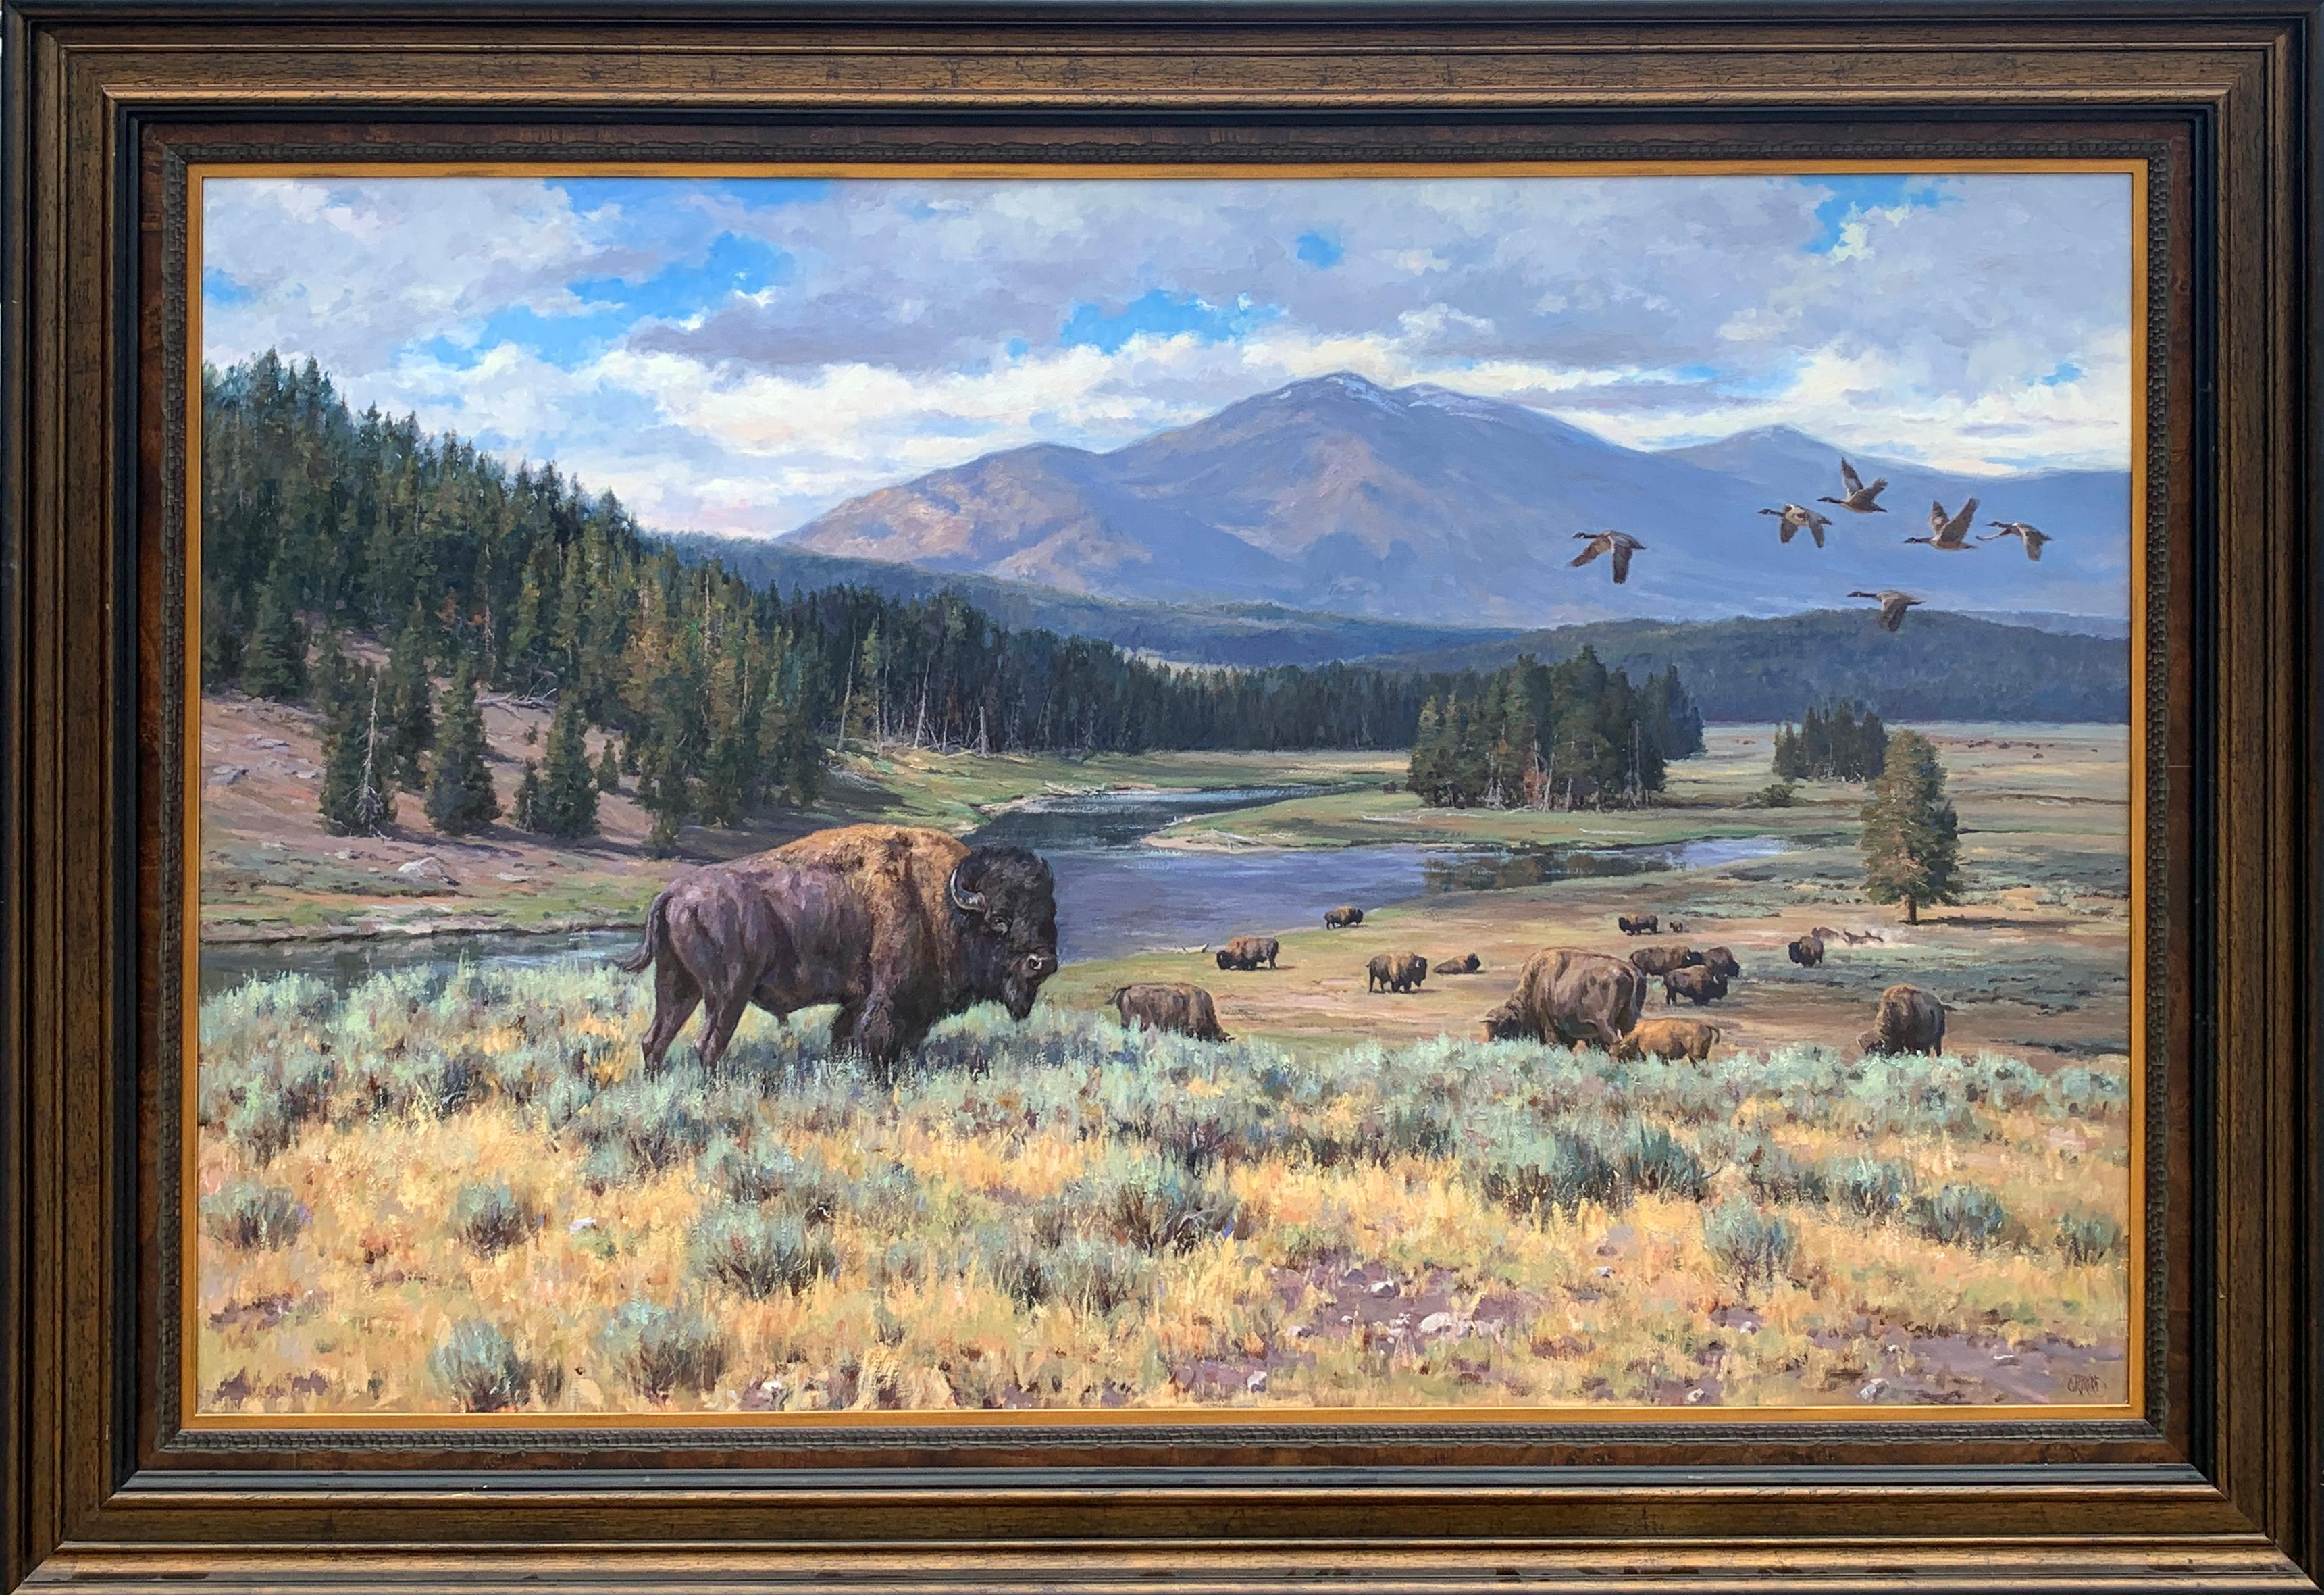 """""""Heart of Yellowstone"""", Brian Grimm, Oil on Canvas, 48x72 in., Western Landscape"""